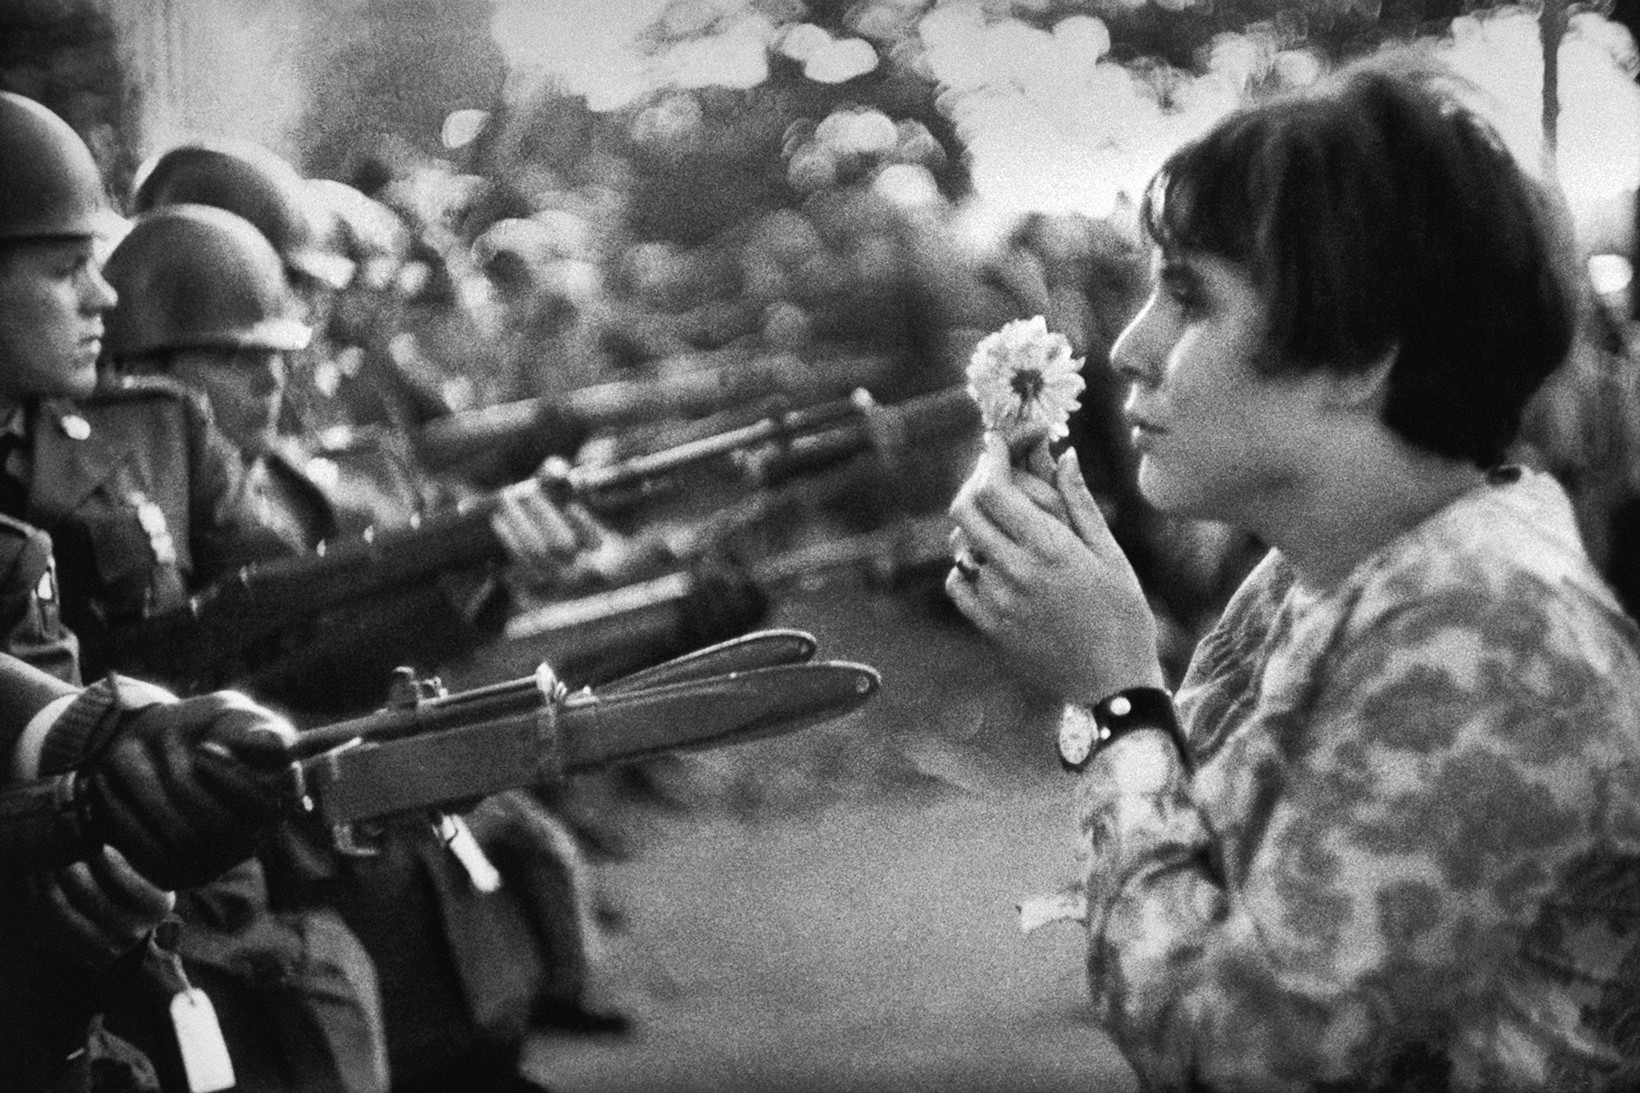 azuma makoto magnum photos war and flowers exhibition photography artworks